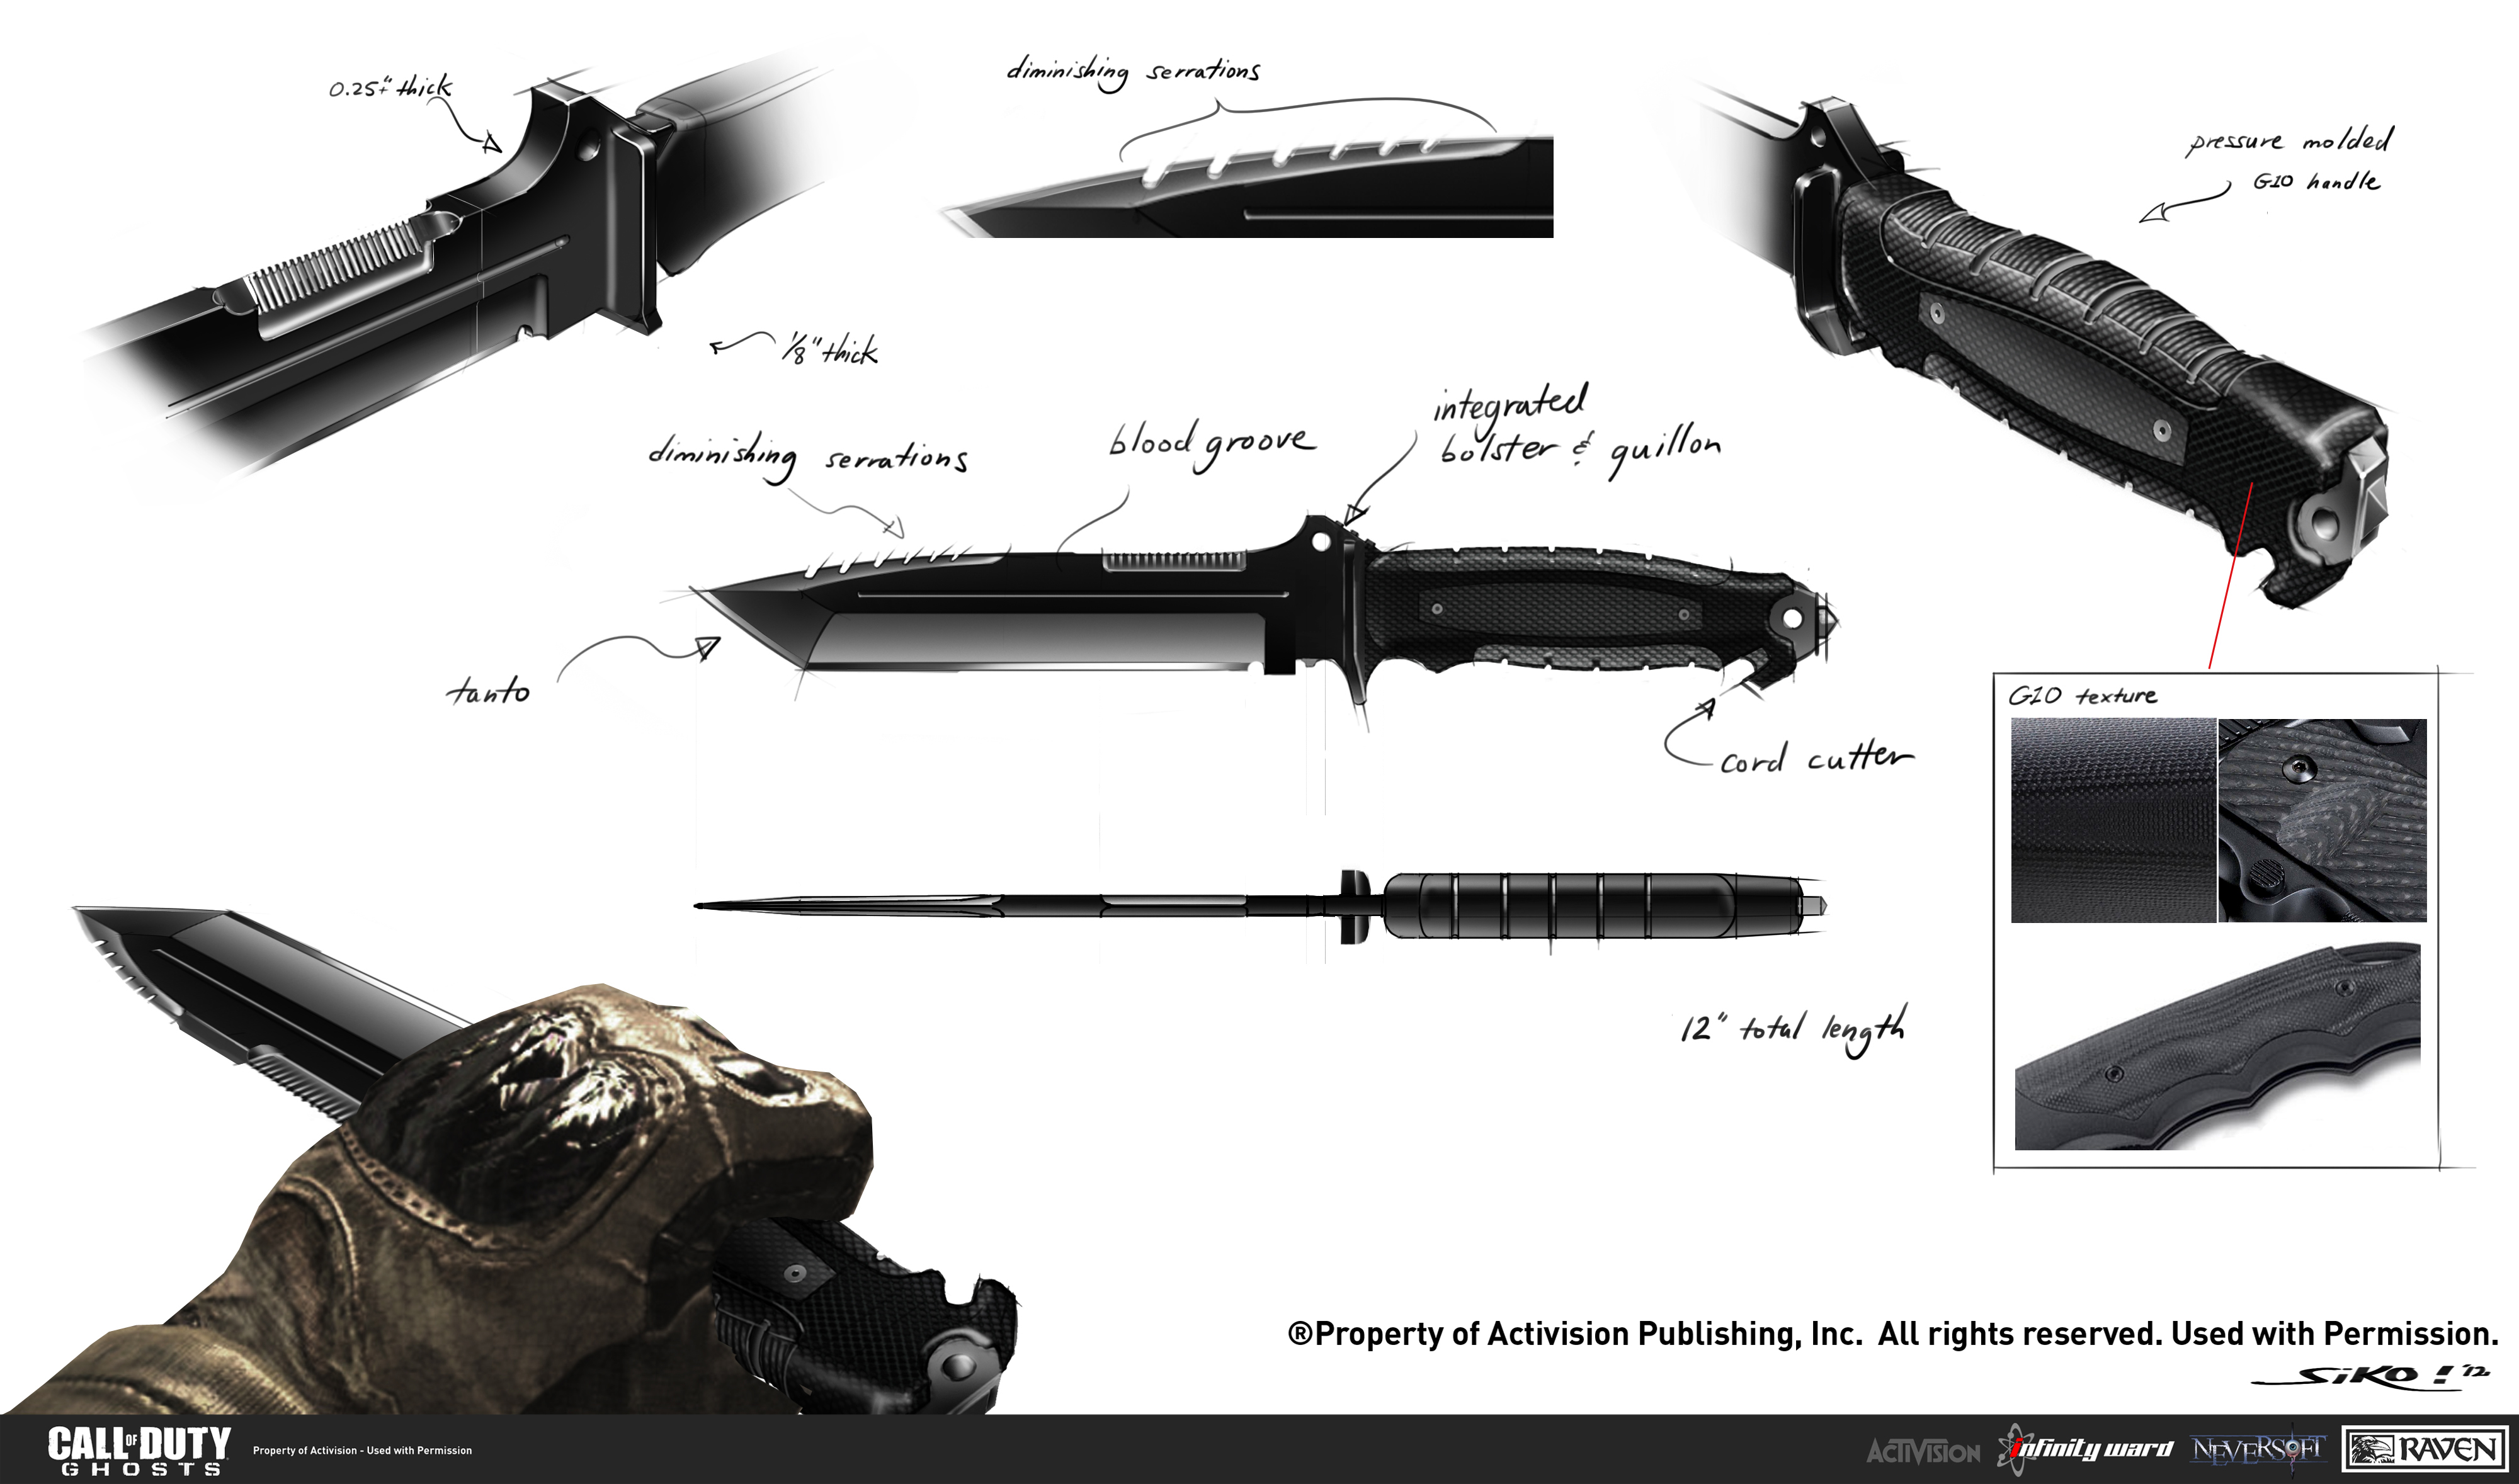 sko_07-19-12_knife_refine